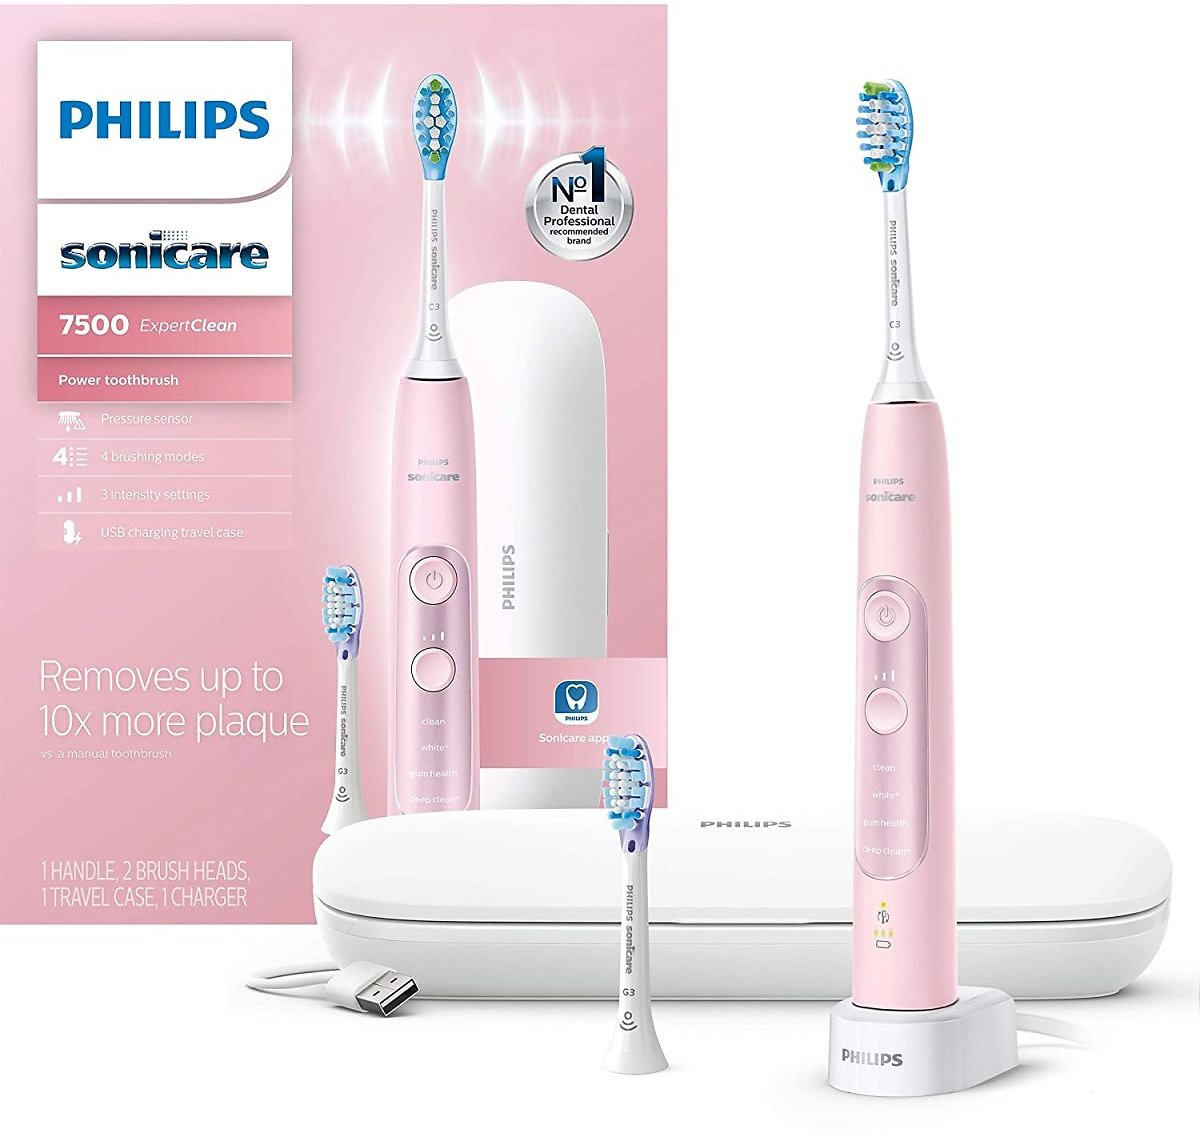 35% Off Philips Sonicare Toothbrushes